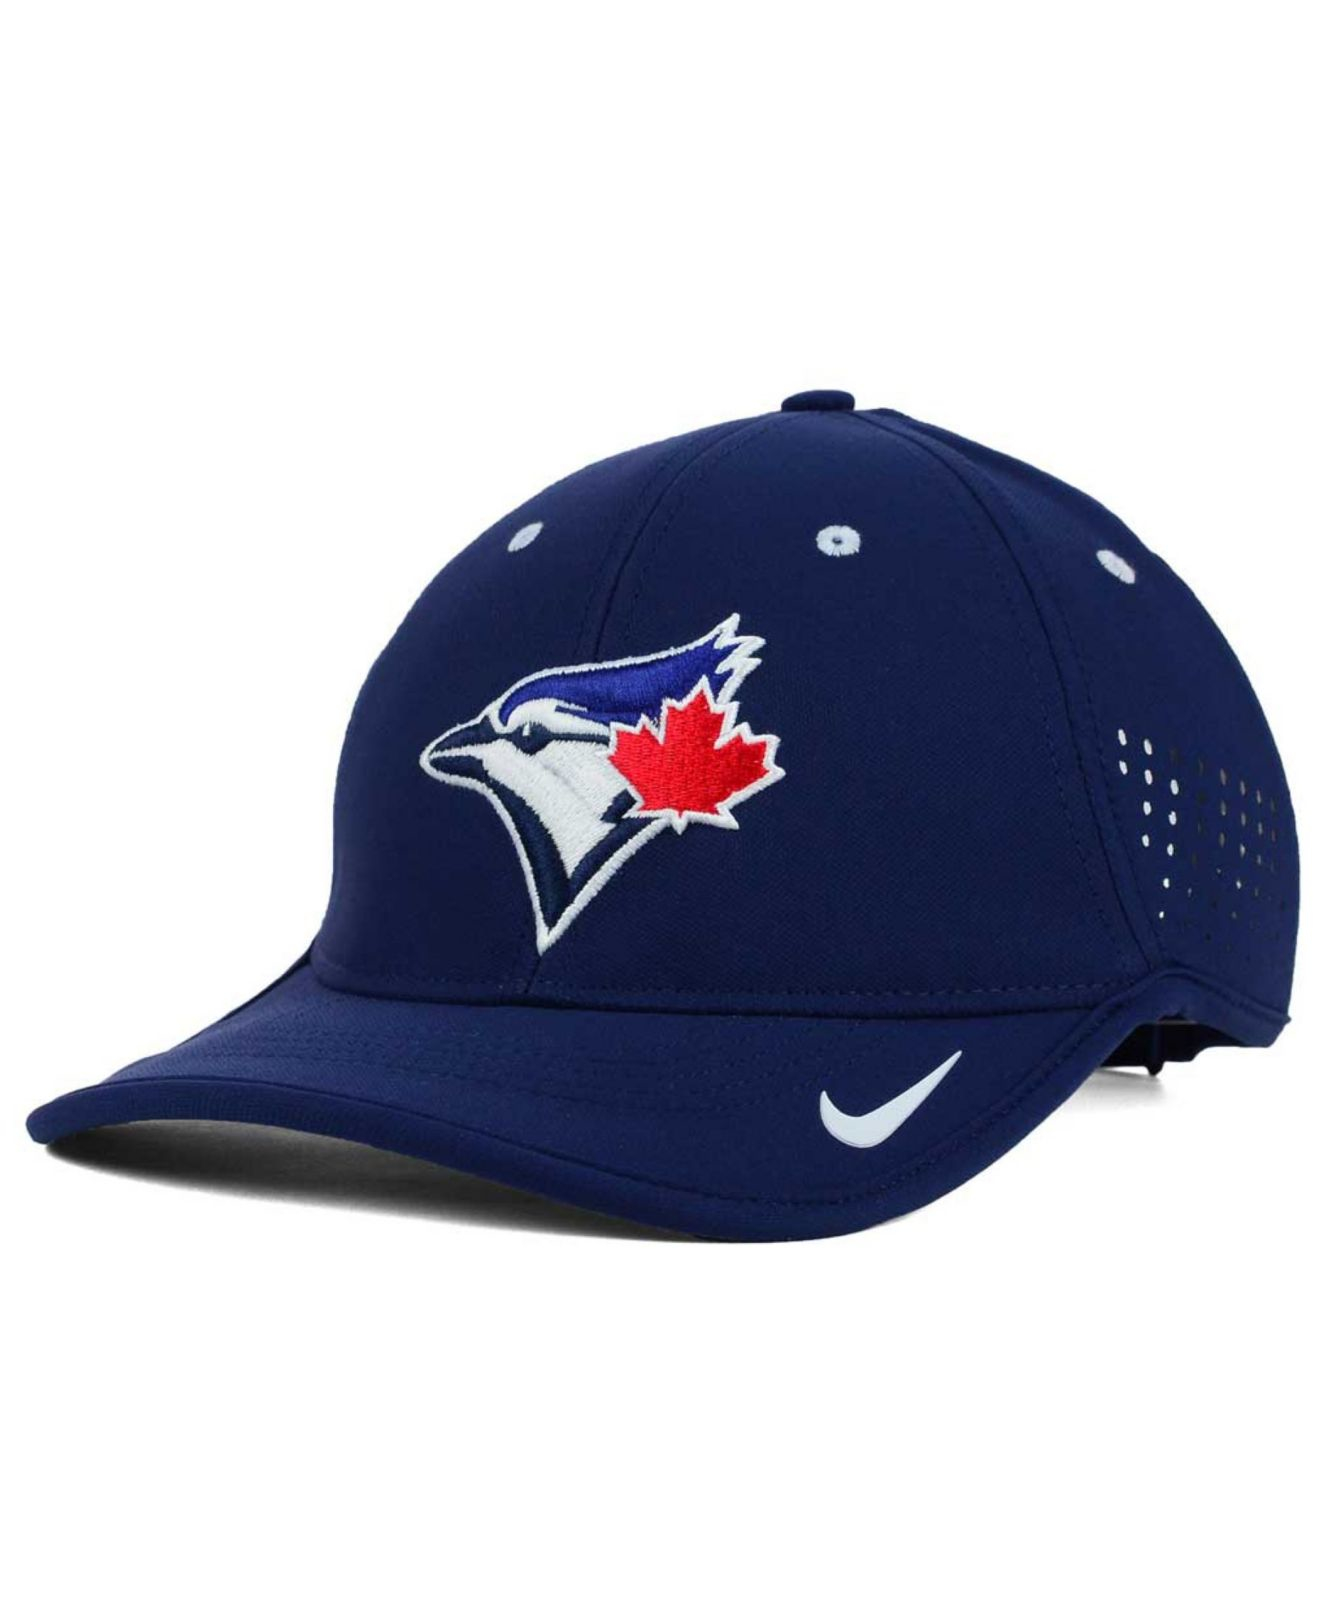 142ec44fef8 ... canada lyst nike toronto blue jays vapor swoosh adjustable cap in red  for men 96ba1 a32be